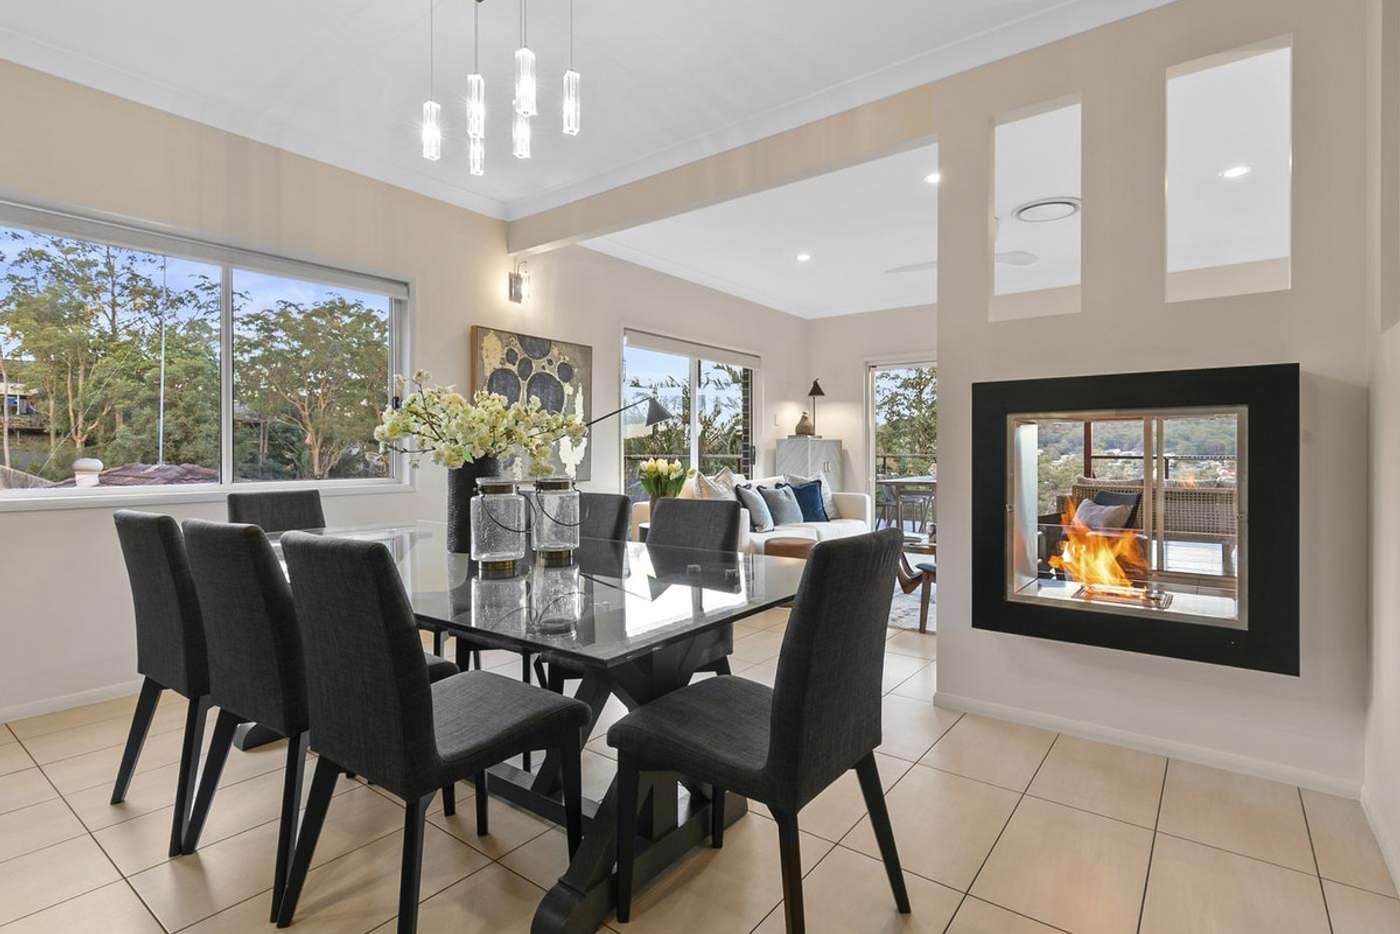 Fifth view of Homely house listing, 18 Dodwell Street, Holland Park West QLD 4121